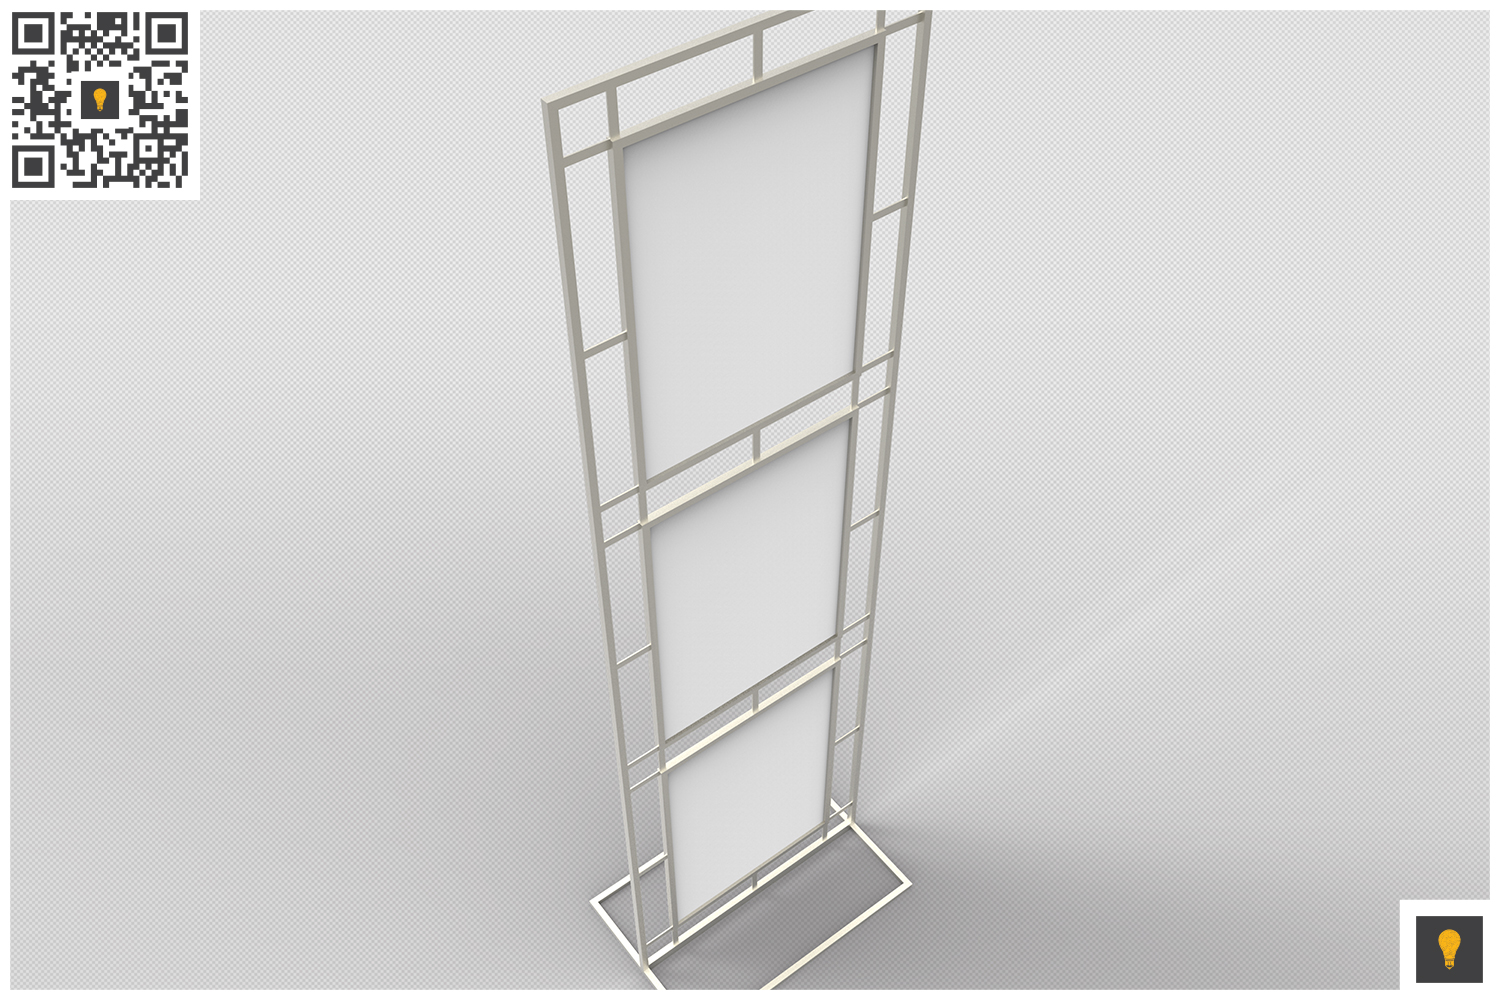 Poster Stand Display 3D Render example image 6